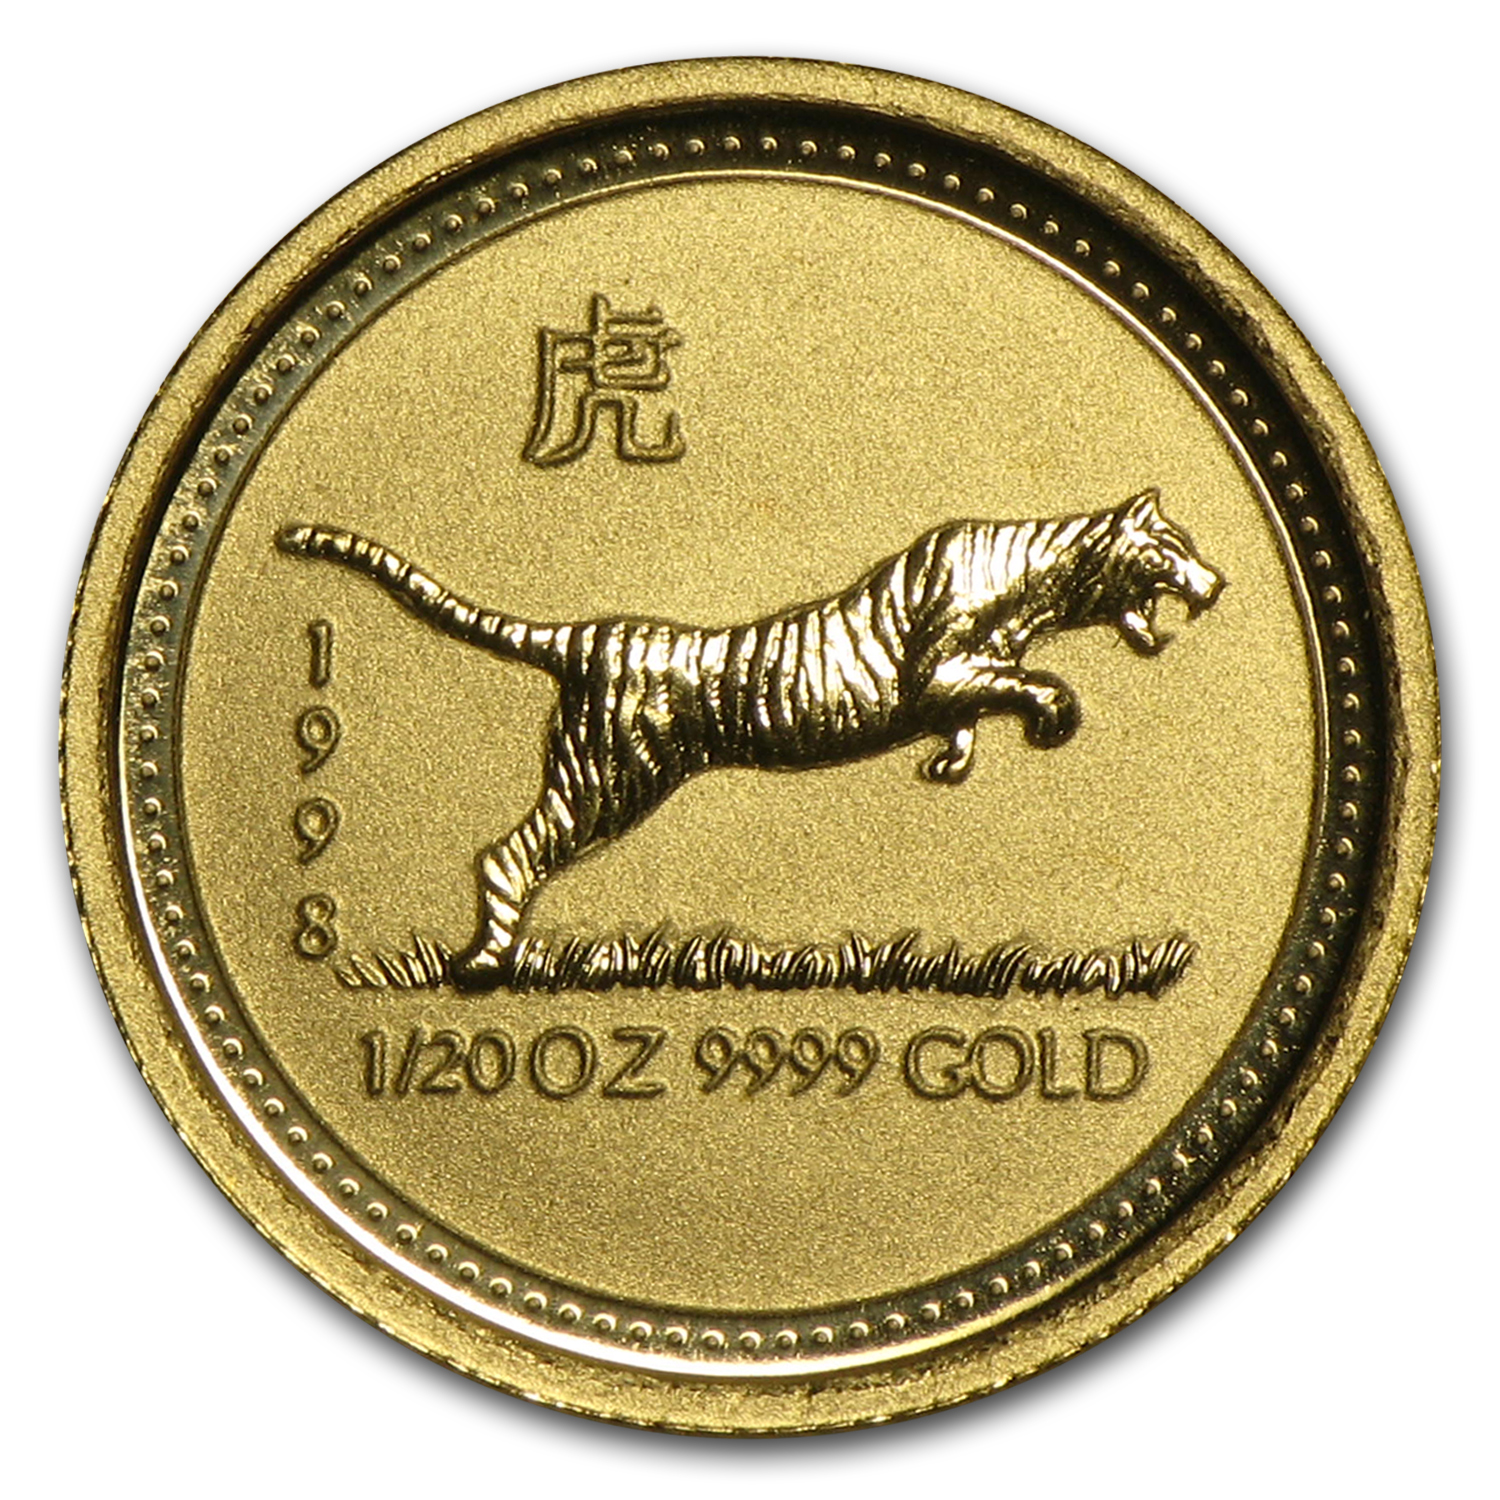 1998 1/20 oz Gold Year of the Tiger Lunar Coin (Series I)